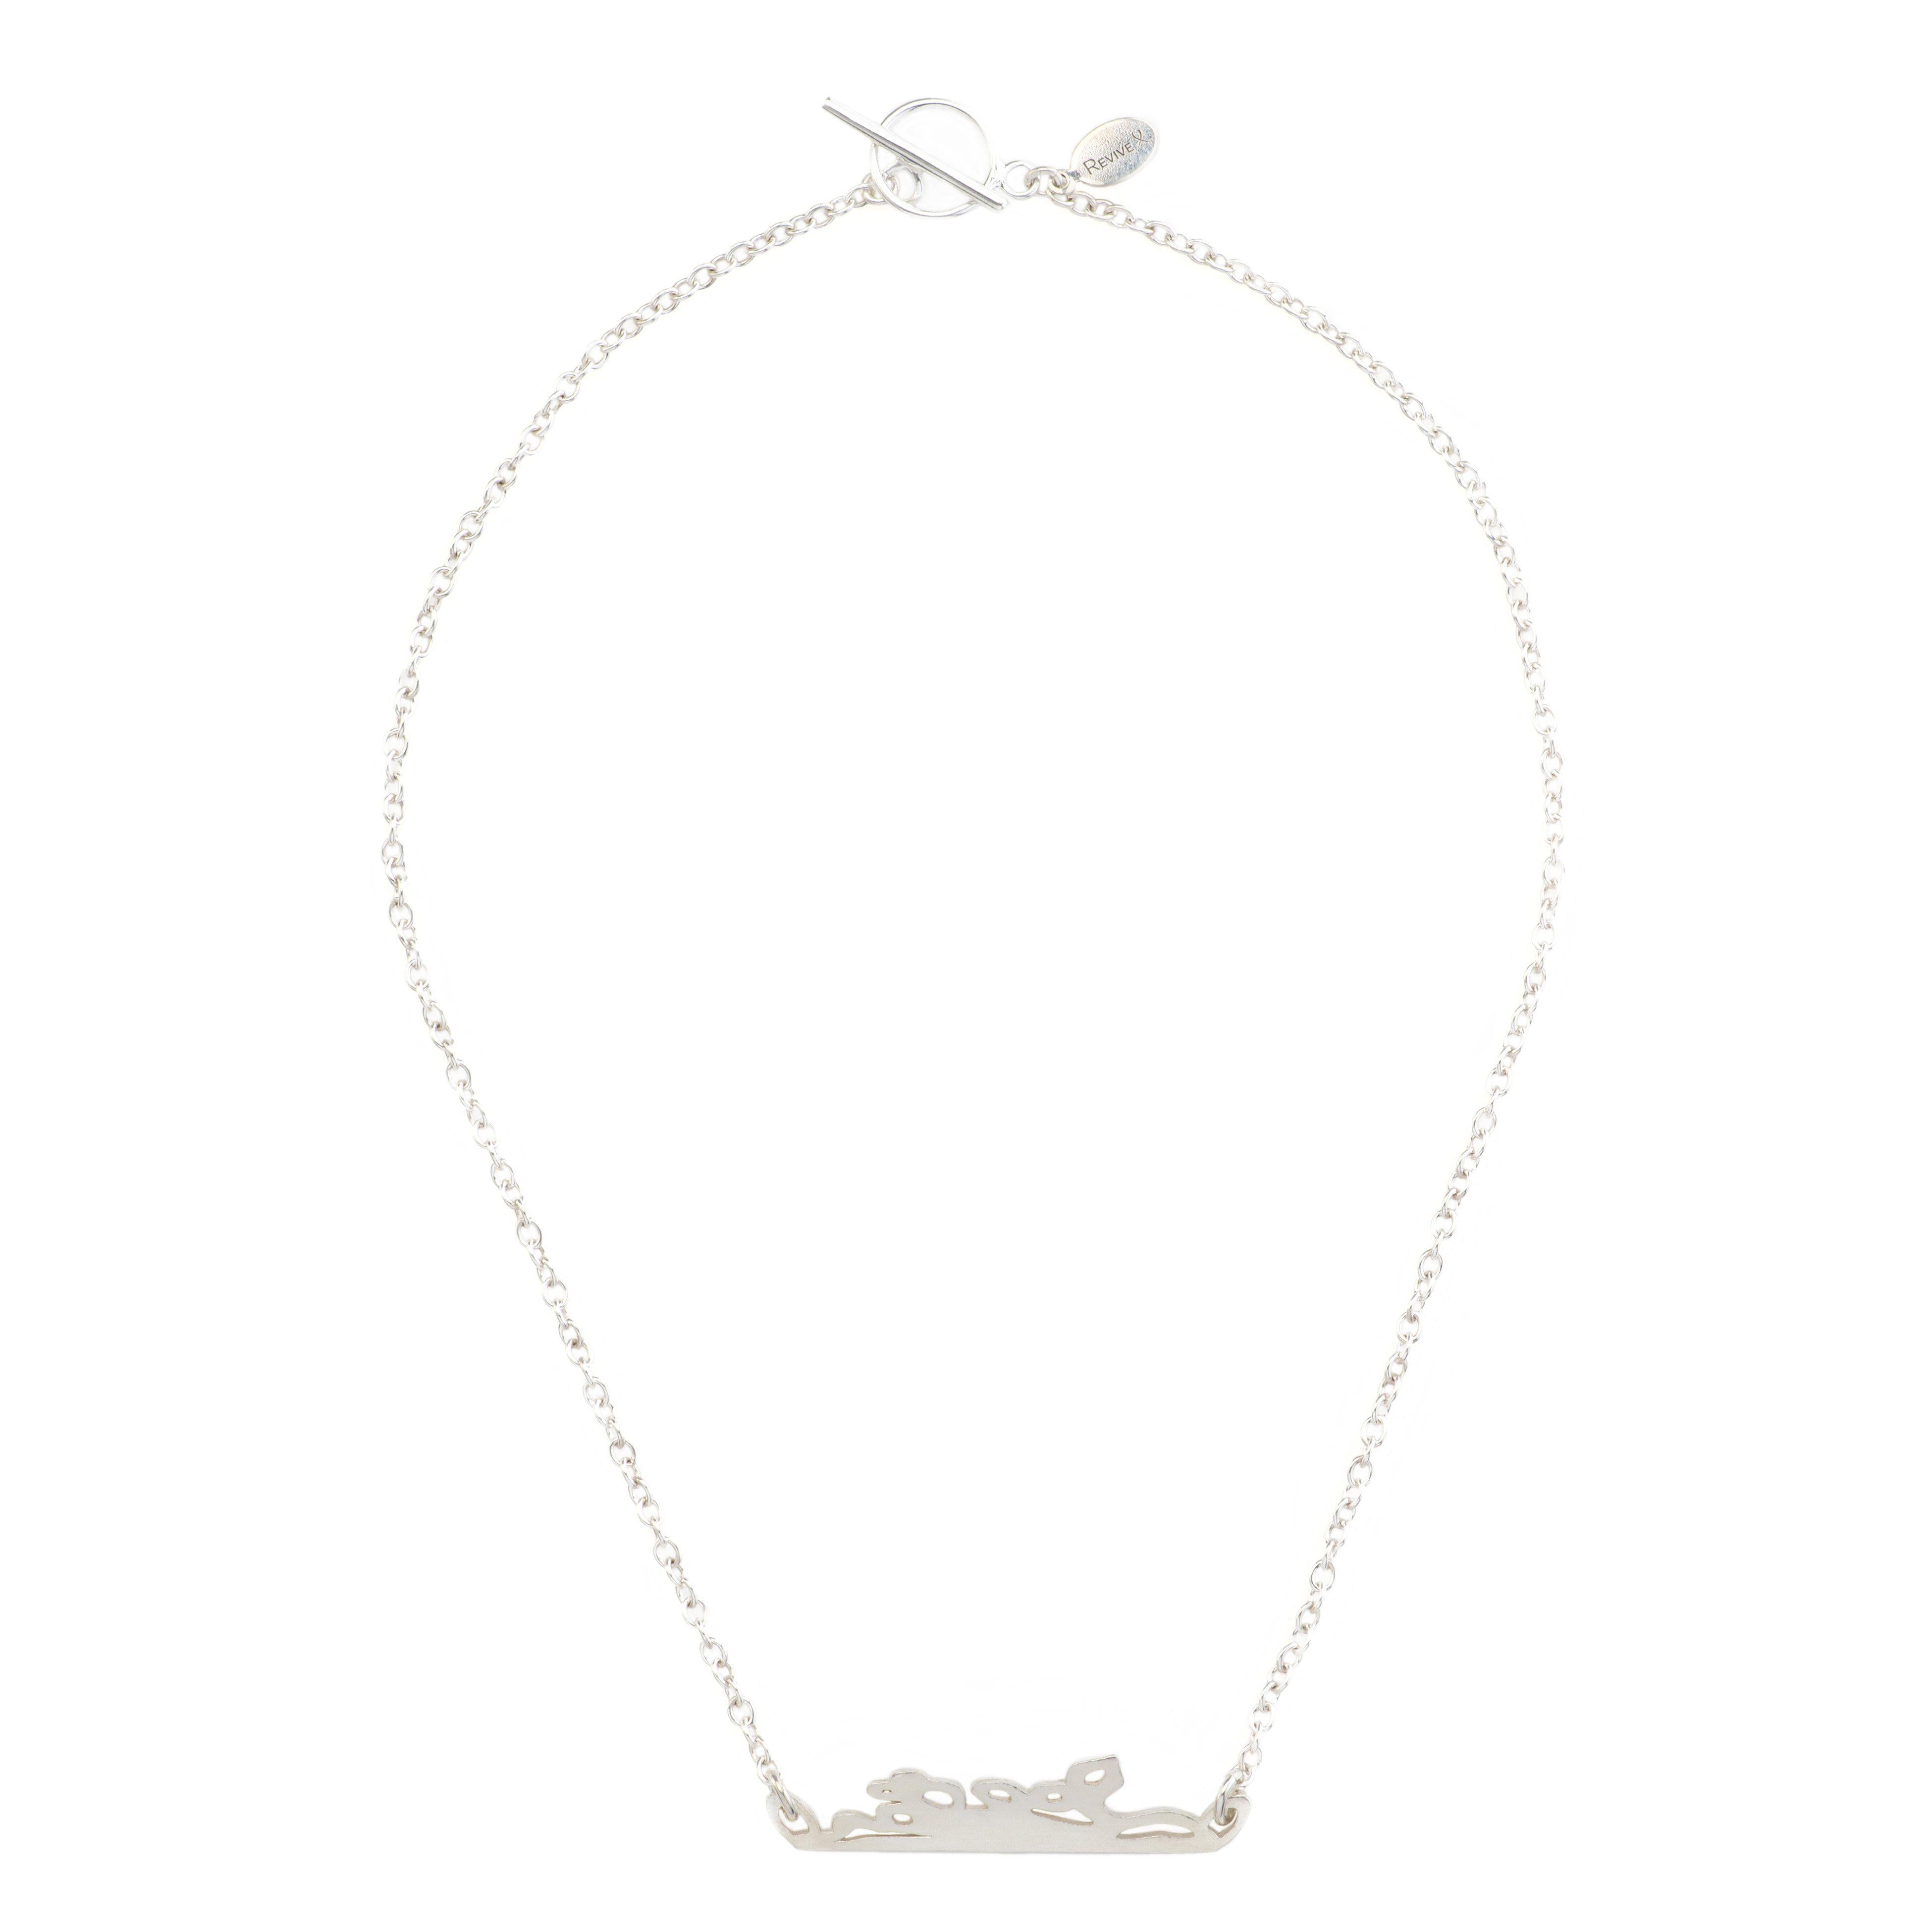 short chain necklace with sterling silver chain and sterling silver bar pendant necklace